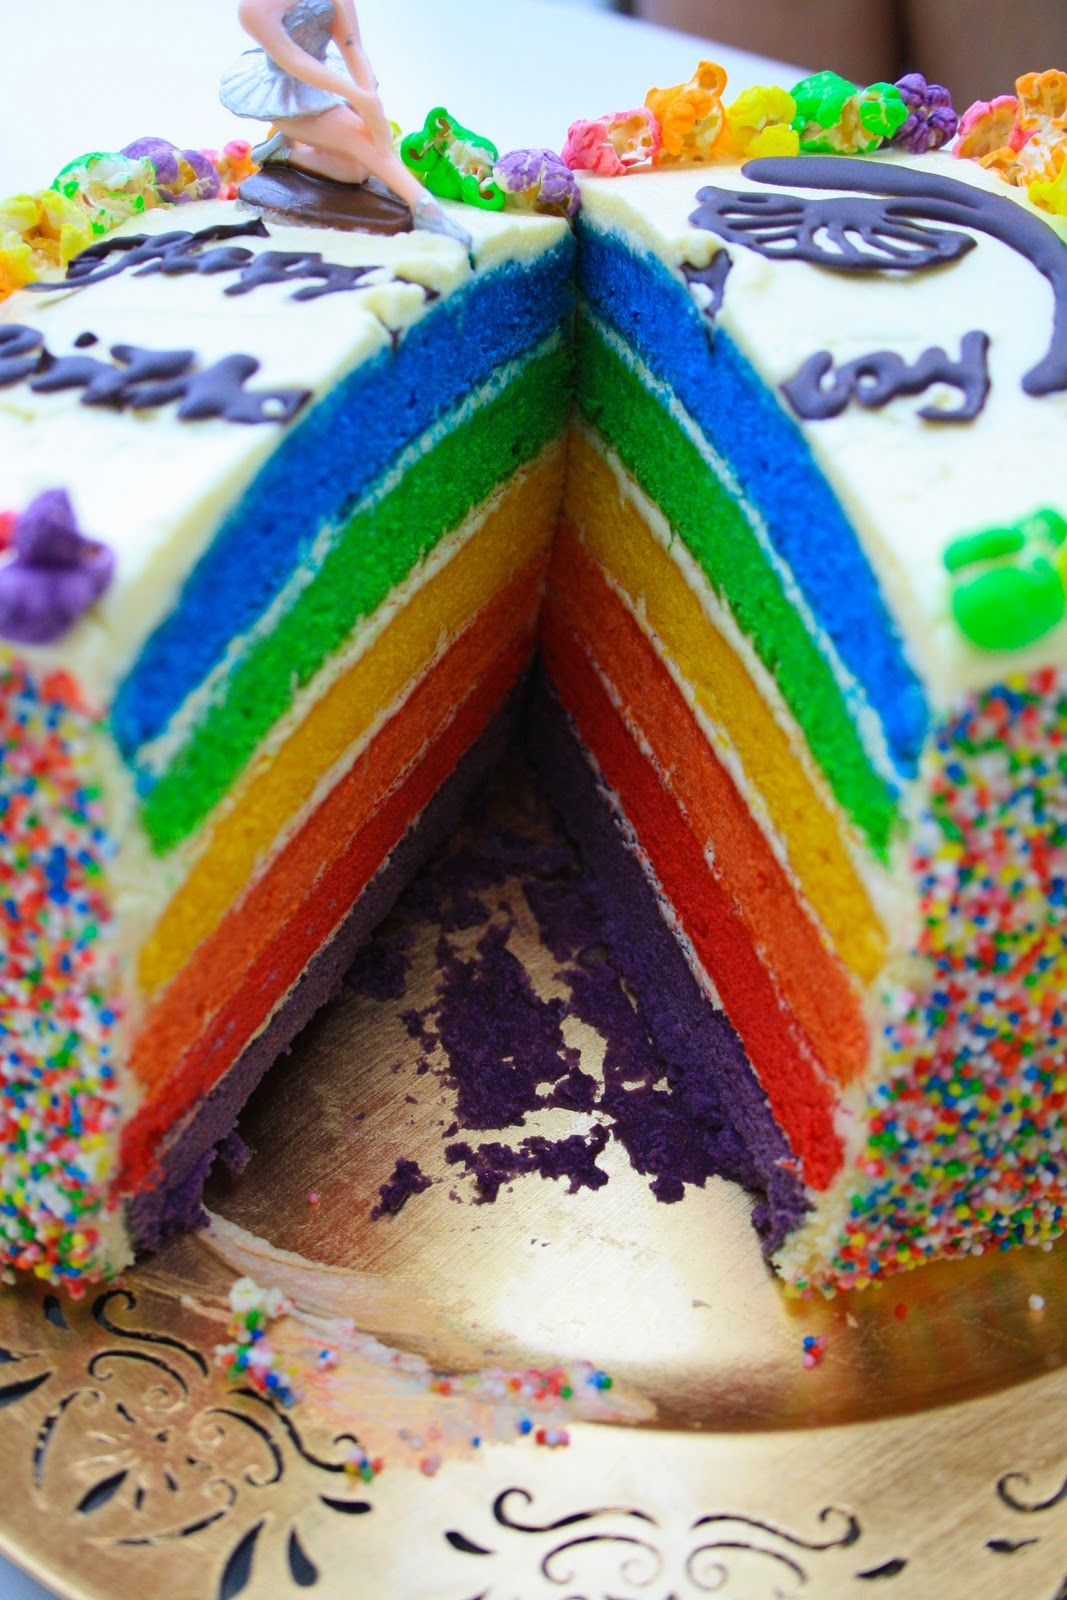 how to make cake colors bright: substitute half liquid for yogurt ...